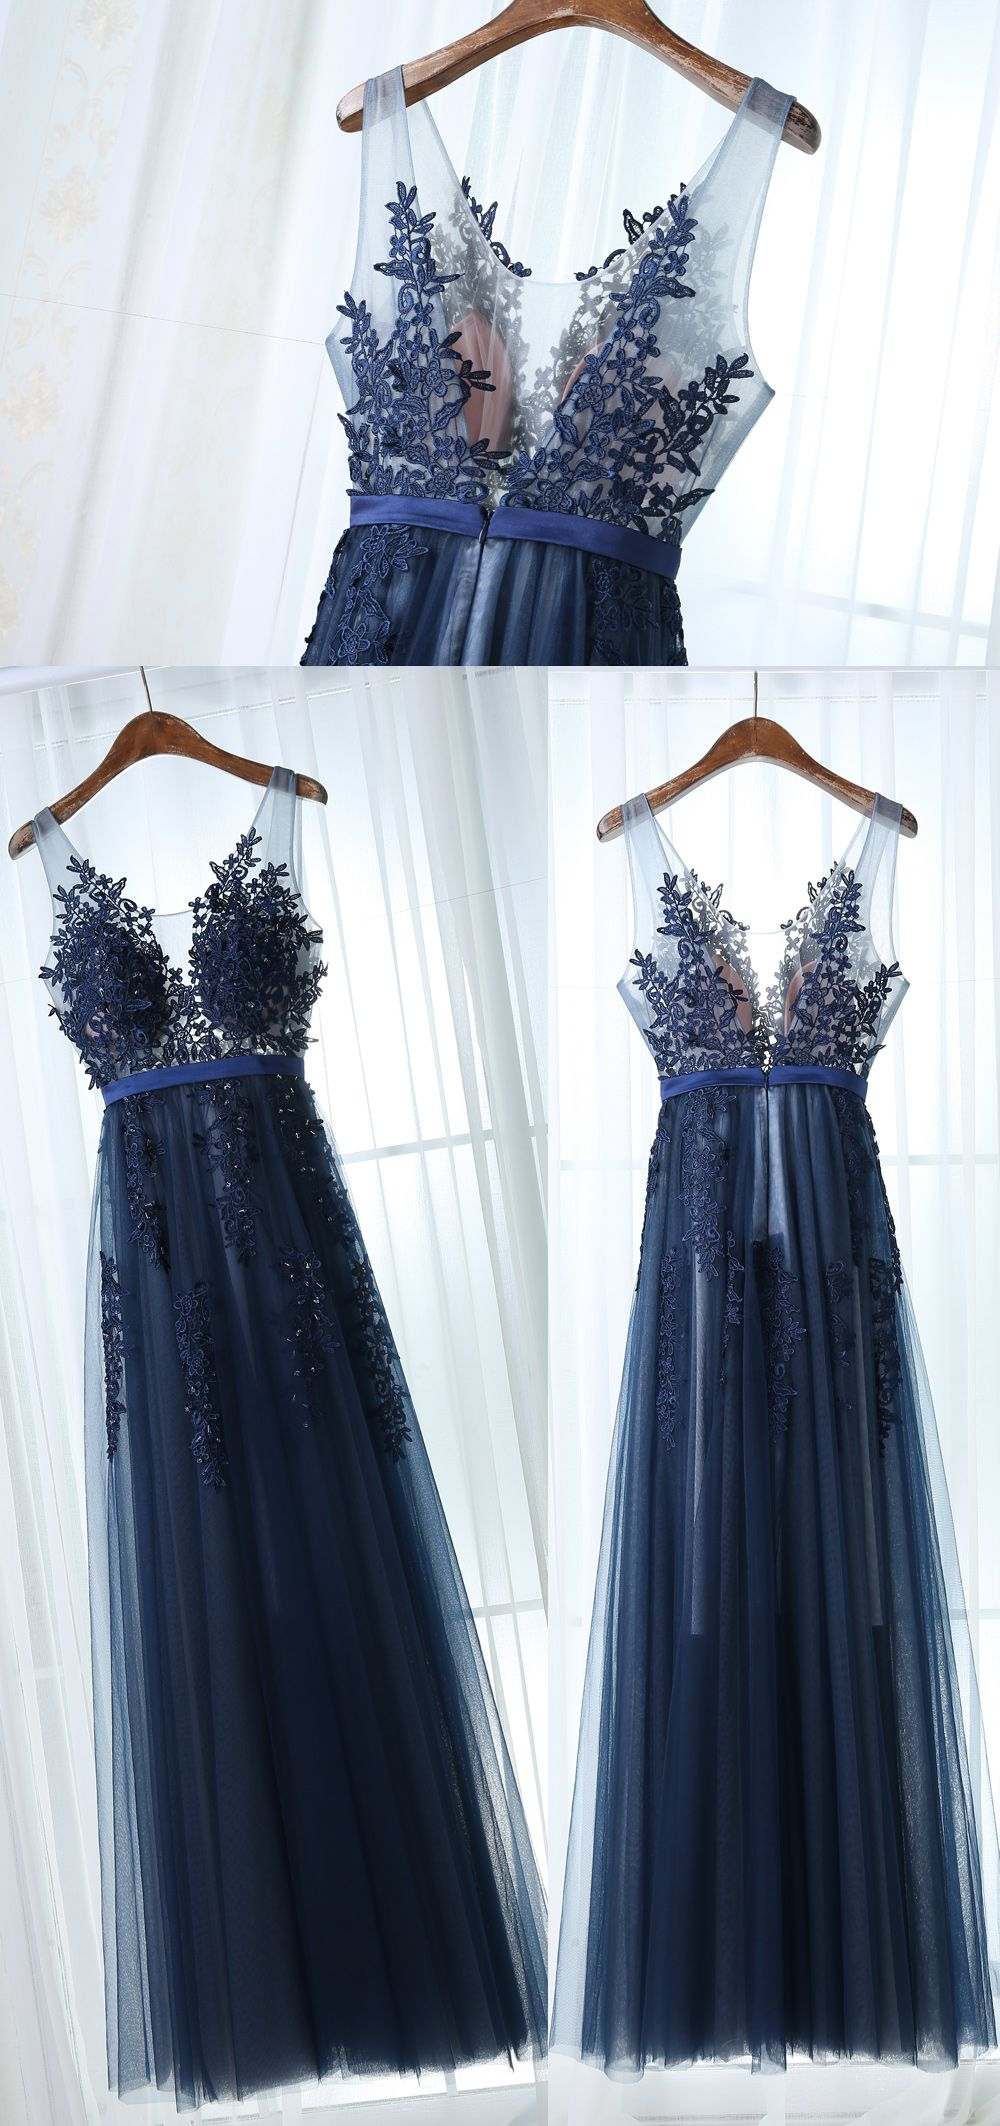 Pin by lolis on vestidos pinterest dresses prom dresses and gowns